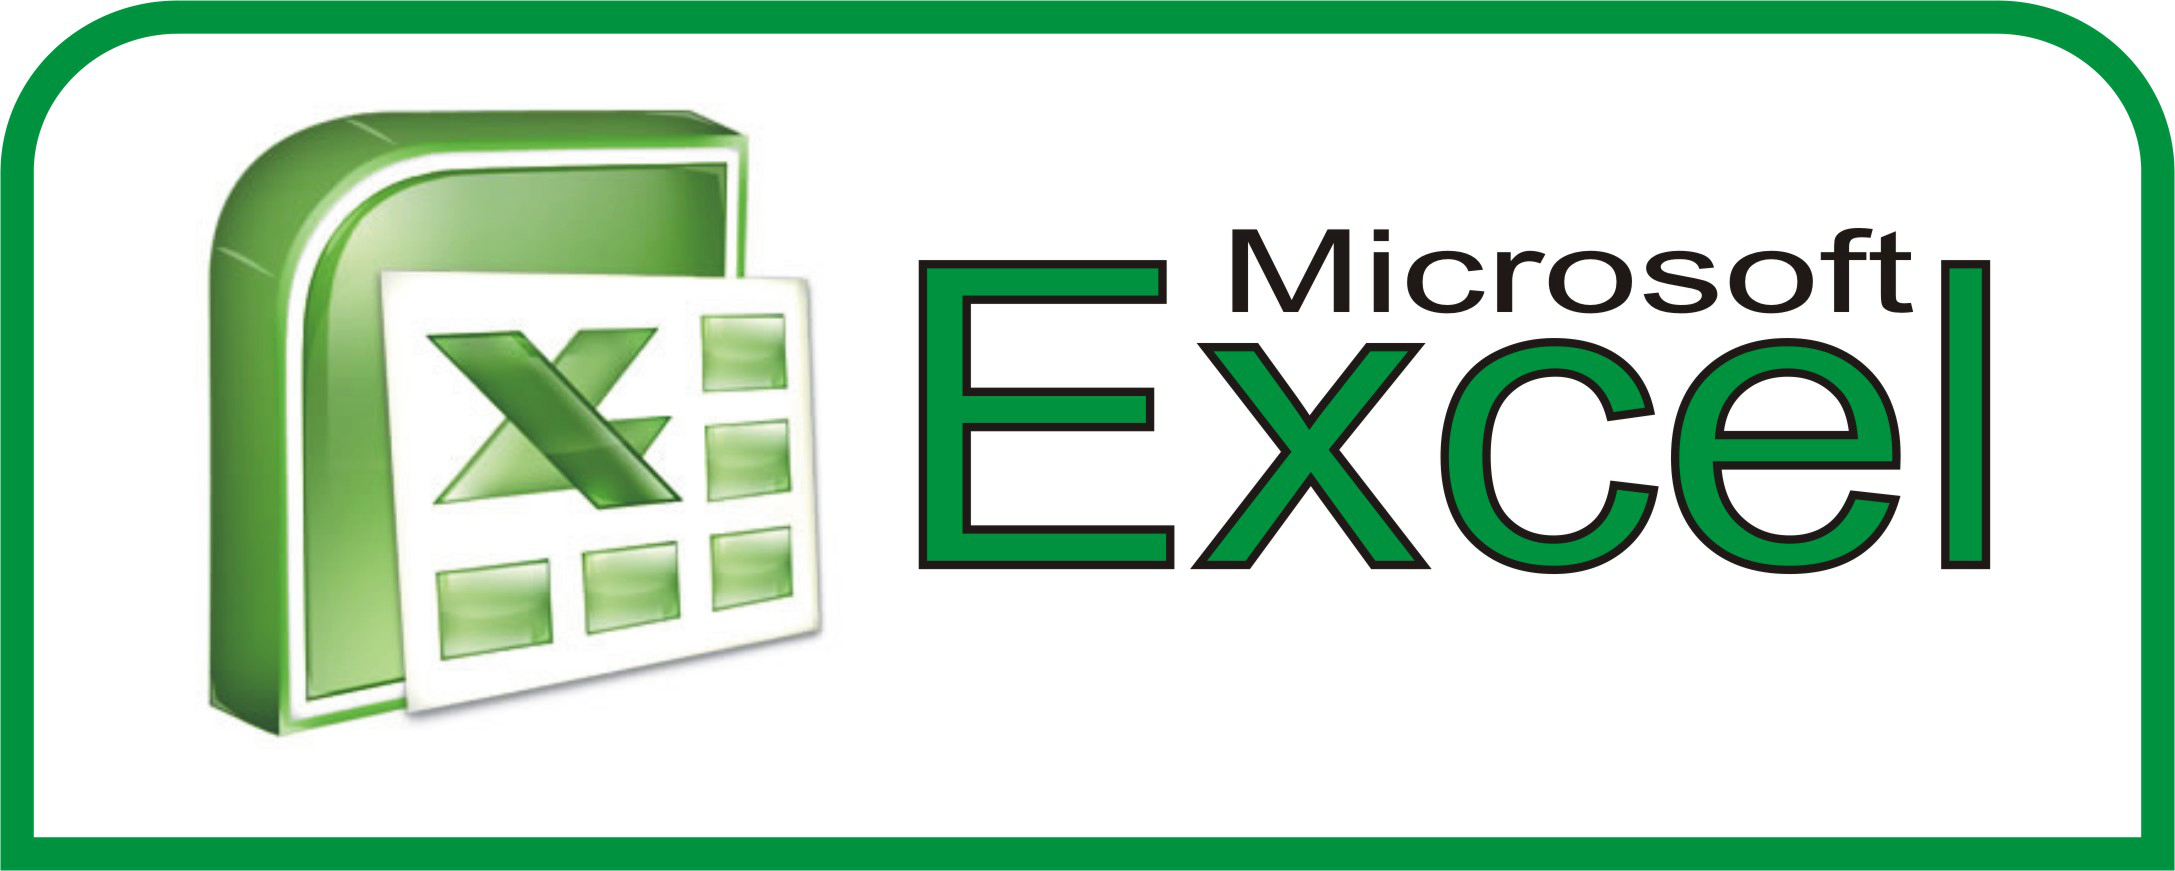 Ediblewildsus  Nice  Excel Shortcuts You Probably Didnt Know About  Techdissected With Fetching Ms Excel Study Besides Micsoft Excel Furthermore Standard Excel With Agreeable Microsoft Excel Has Stopped Working  Also Protect Sheet Excel  In Addition How To Add Cells On Excel And Microsoft Excel Environment As Well As Excel Chore Chart Additionally How To Calculate Date Difference In Excel From Techdissectedcom With Ediblewildsus  Fetching  Excel Shortcuts You Probably Didnt Know About  Techdissected With Agreeable Ms Excel Study Besides Micsoft Excel Furthermore Standard Excel And Nice Microsoft Excel Has Stopped Working  Also Protect Sheet Excel  In Addition How To Add Cells On Excel From Techdissectedcom